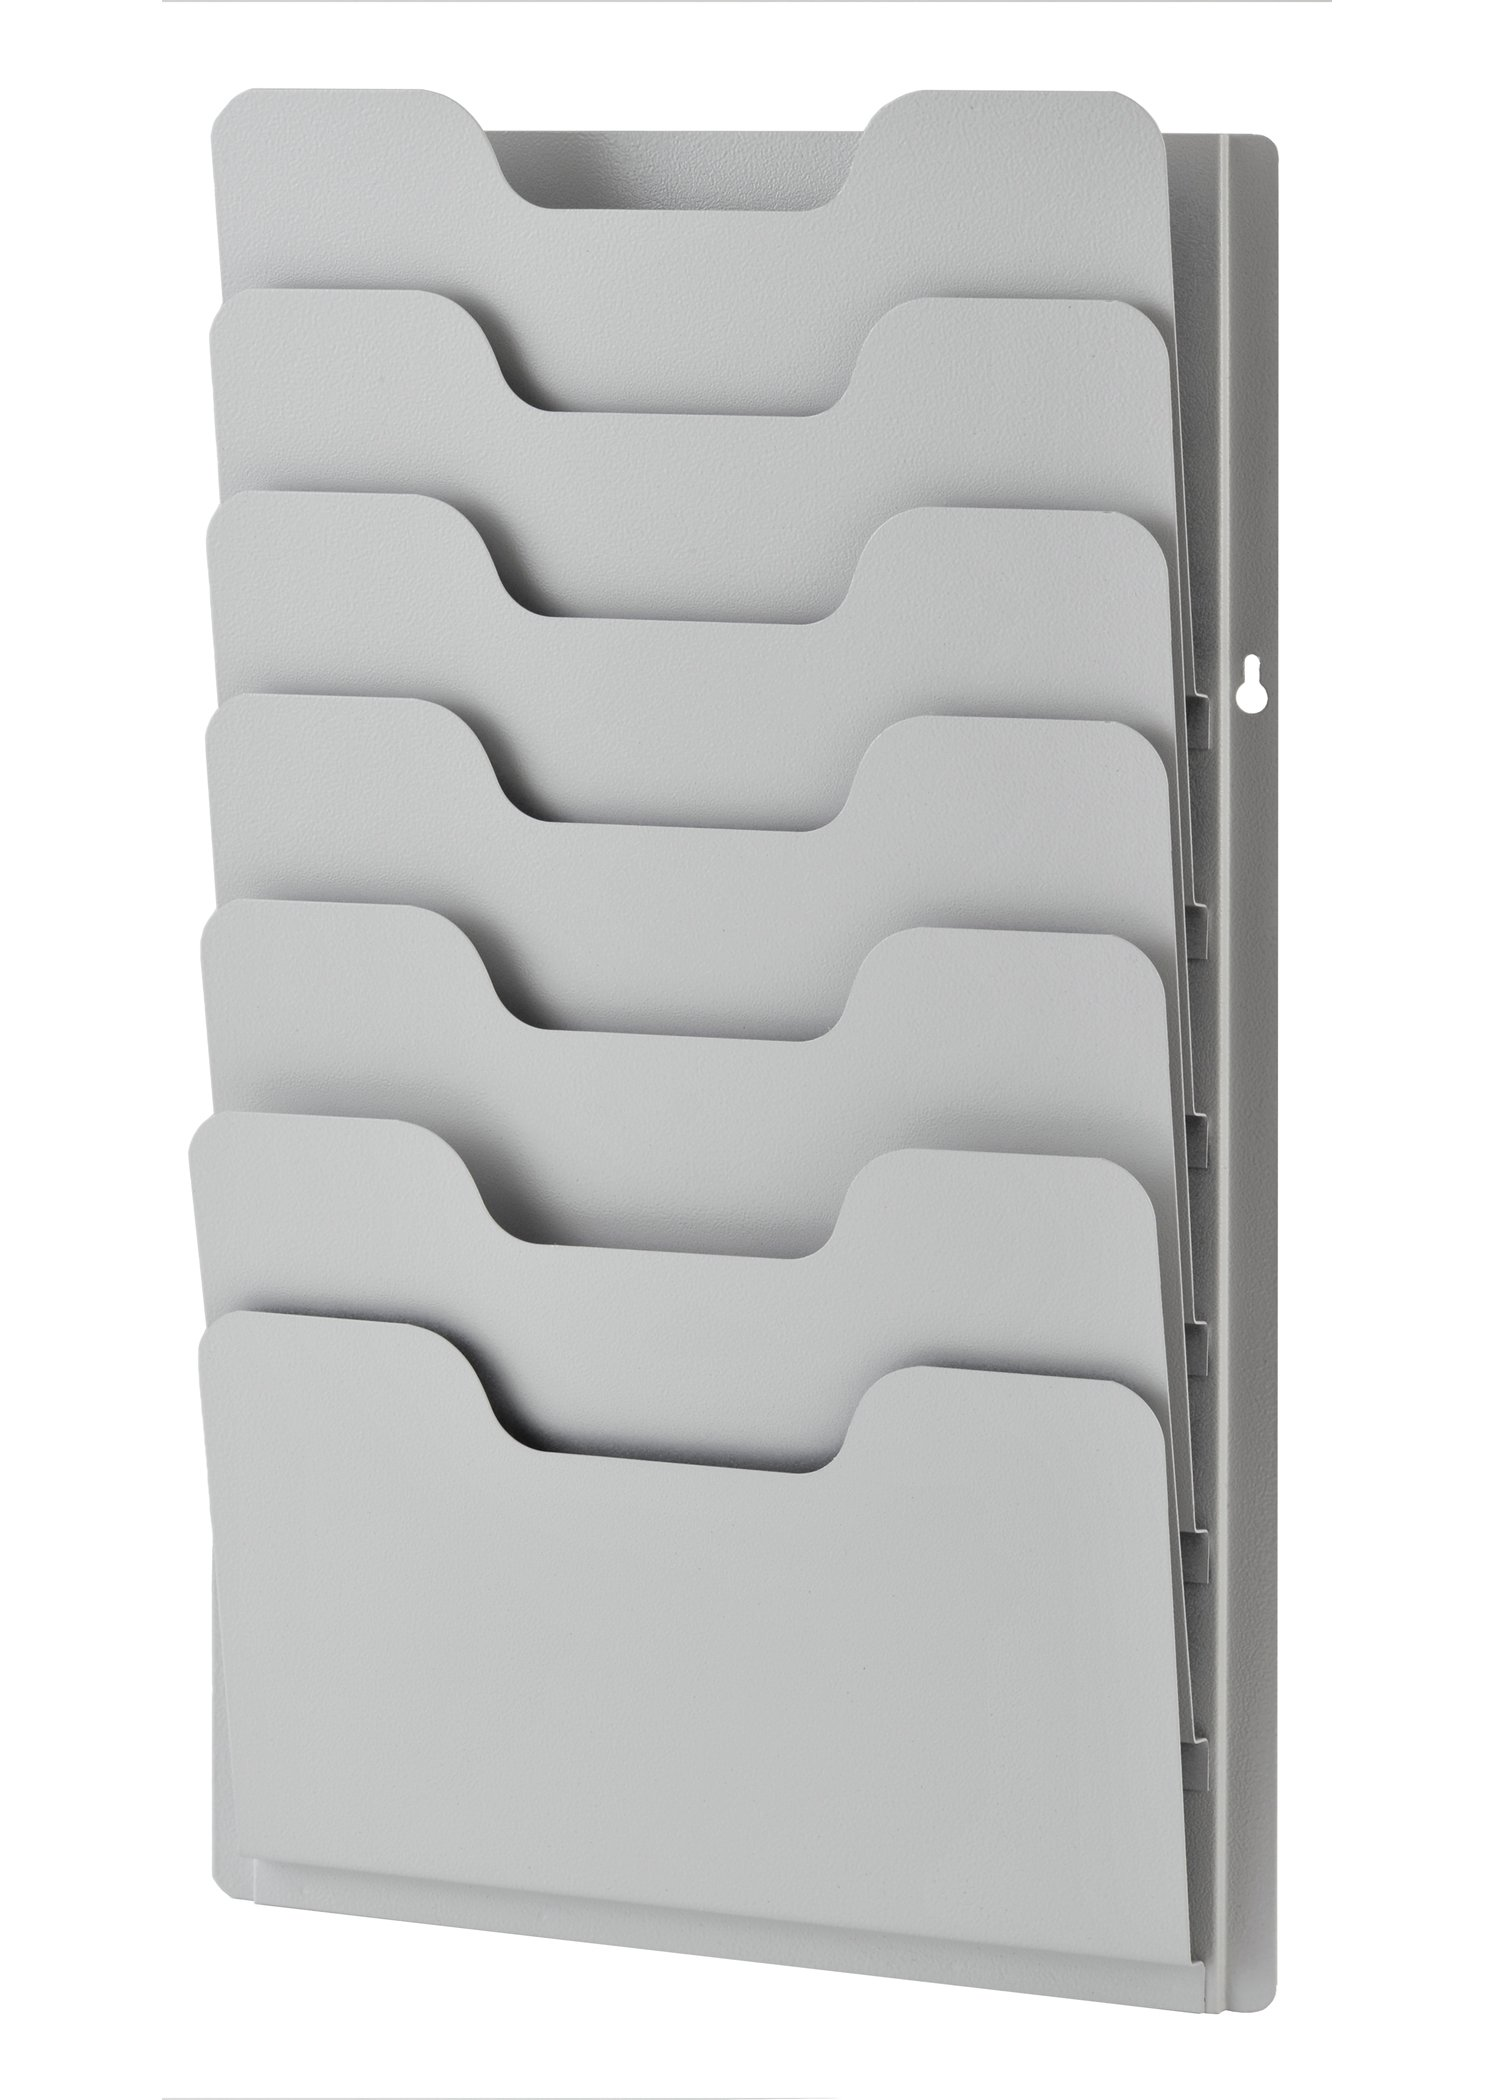 Buddy Products 7-Pocket Data Rack, Steel, 13.38 x 2 x 21.63 Inches, Platinum (0810-32)